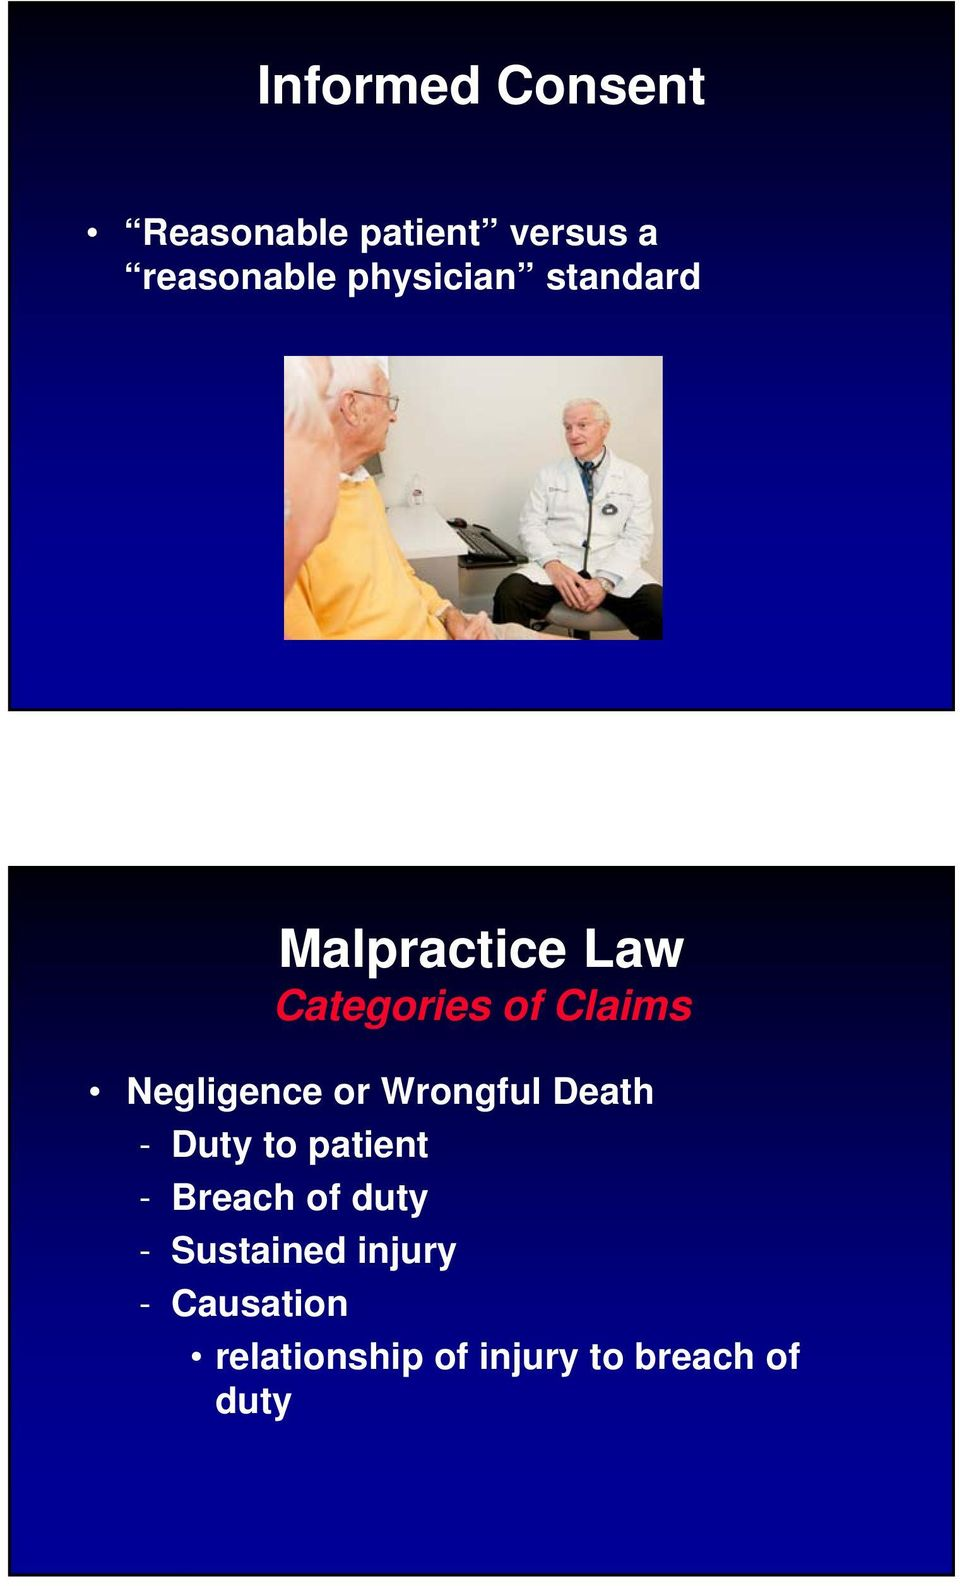 Negligence or Wrongful Death - Duty to patient - Breach of